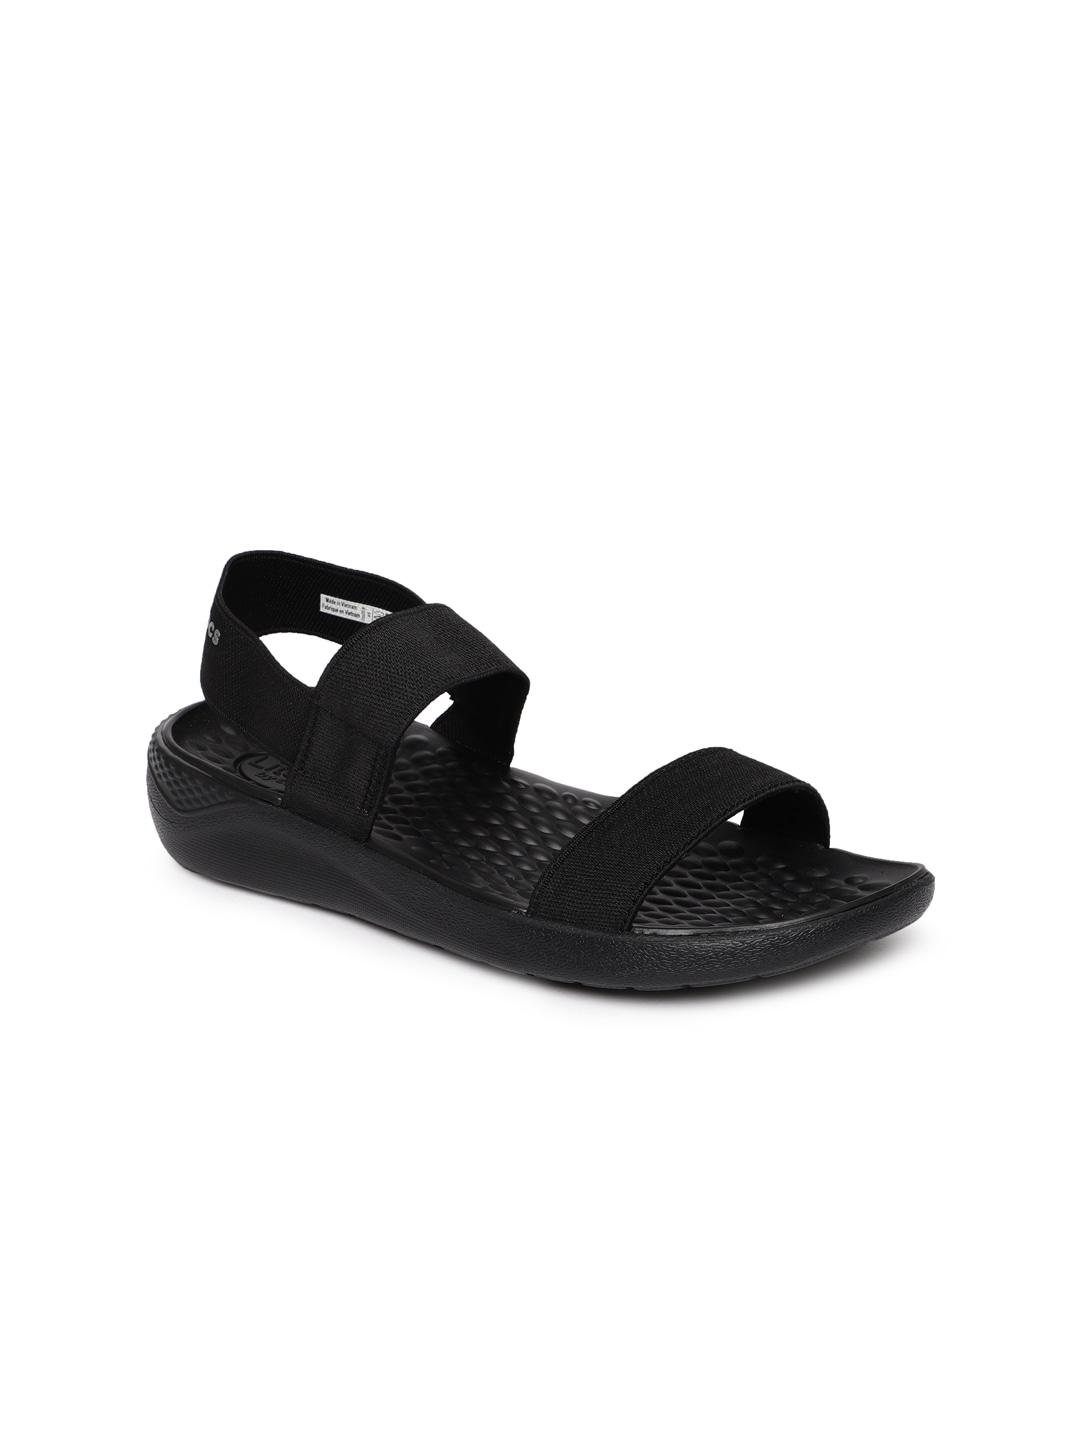 8949f7e5b689 Crocs Shoes Online - Buy Crocs Flip Flops   Sandals Online in India - Myntra